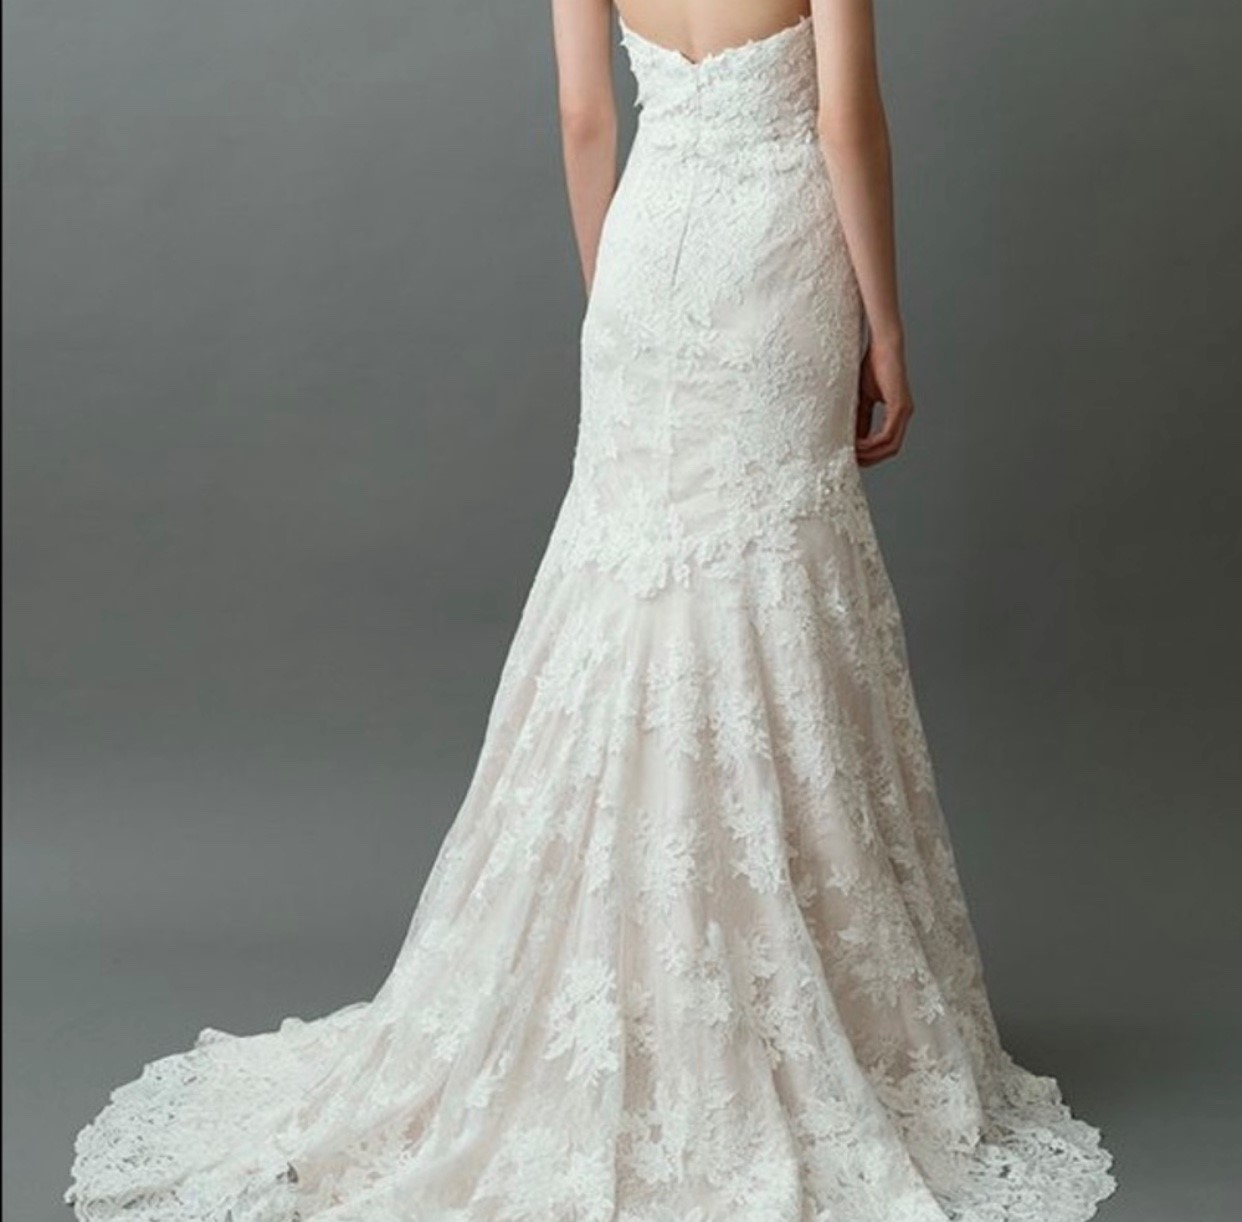 Jenny yoo - Morgan Wedding Dress size 6 - $2800 - (30% OFF)